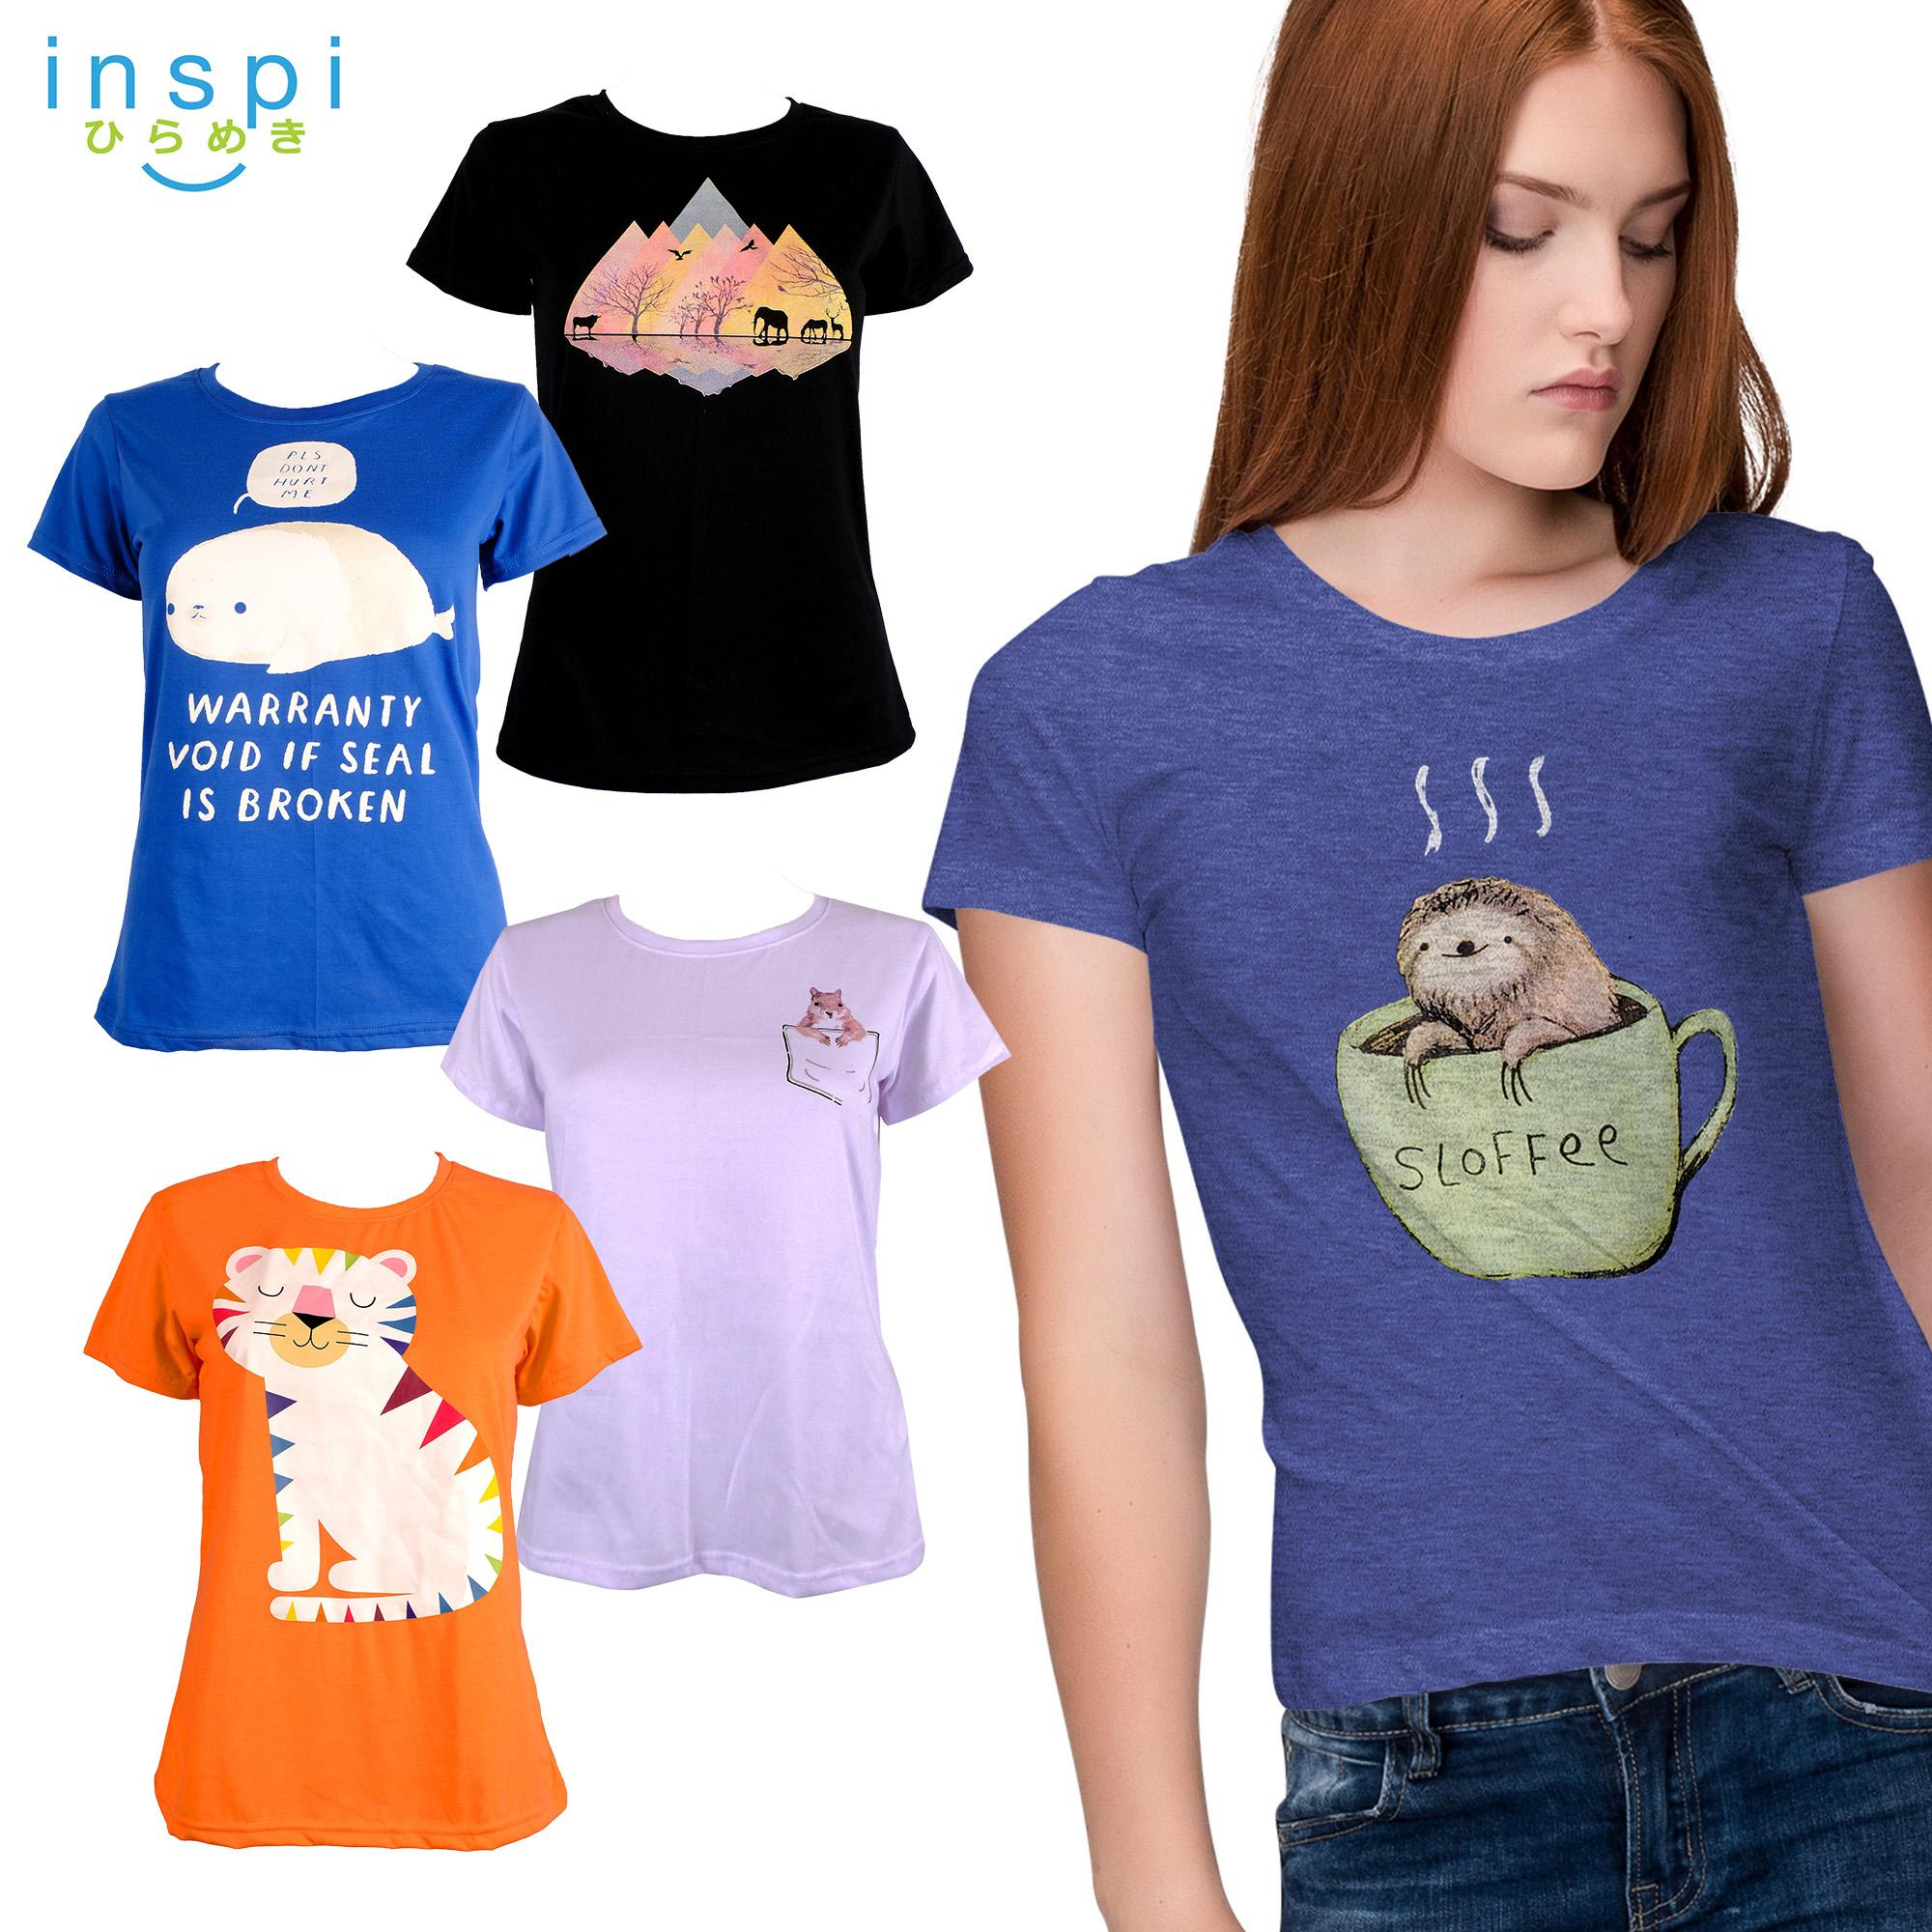 01c65bffb 1335599 items found in Clothing. INSPI Tees Ladies Pet Collection tshirt  printed graphic tee Ladies t shirt shirts women tshirts for